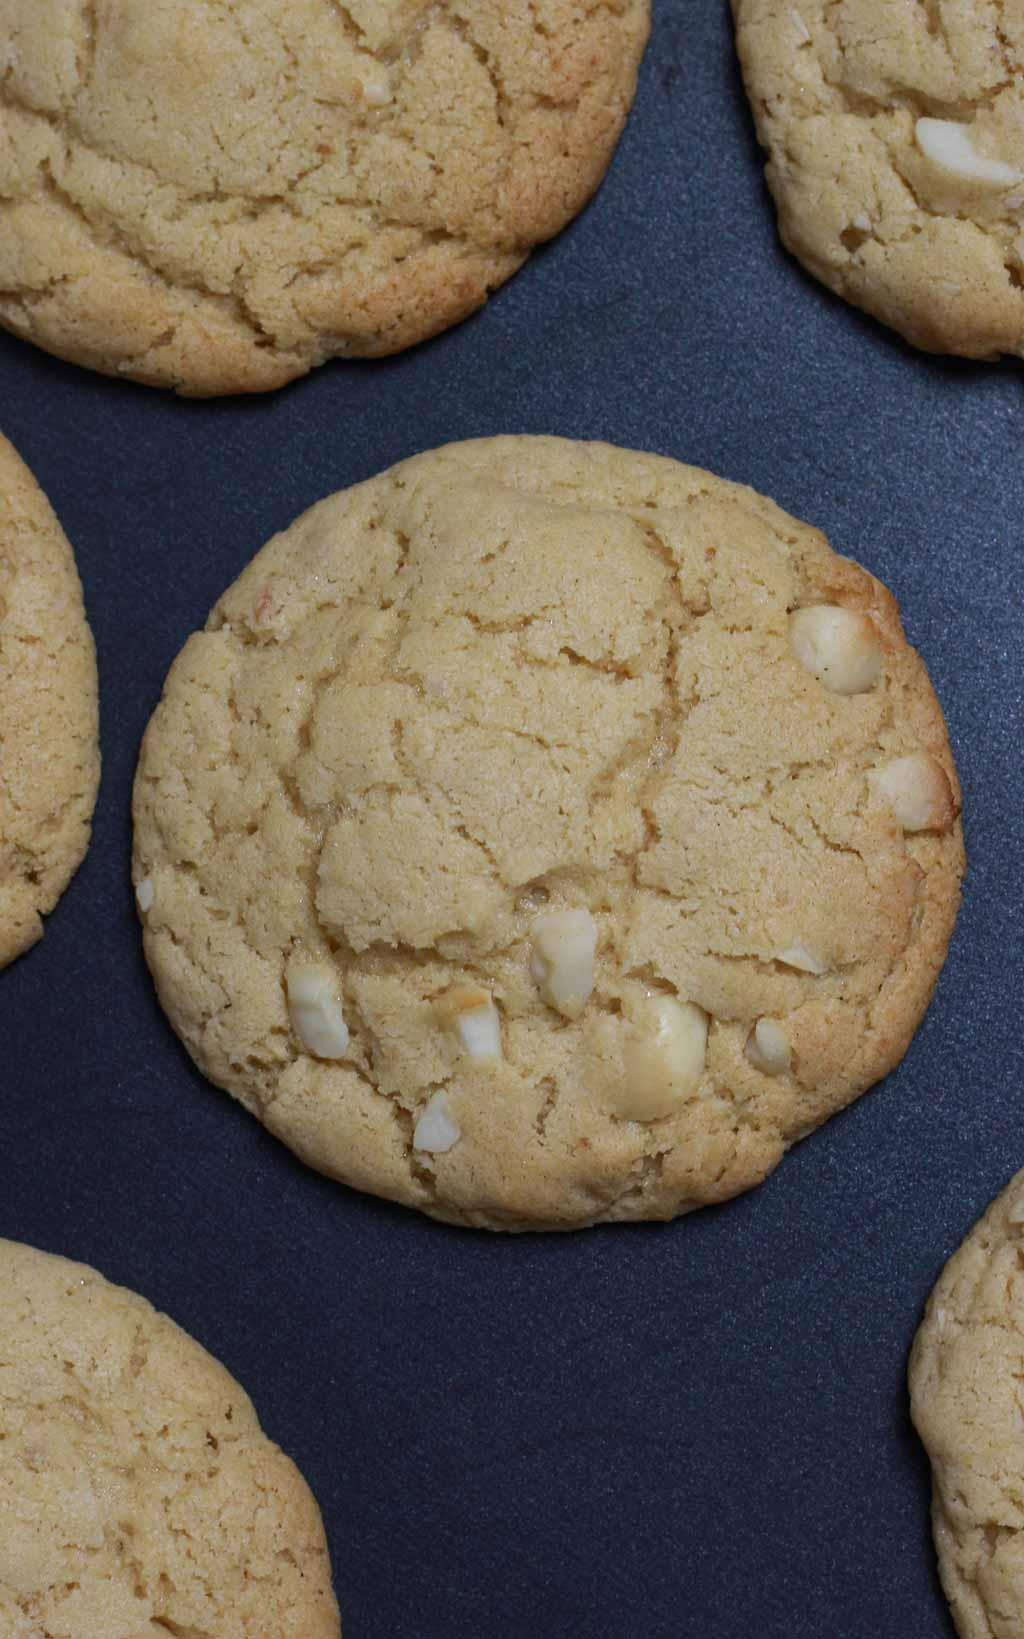 Baked Cookies On The Tray